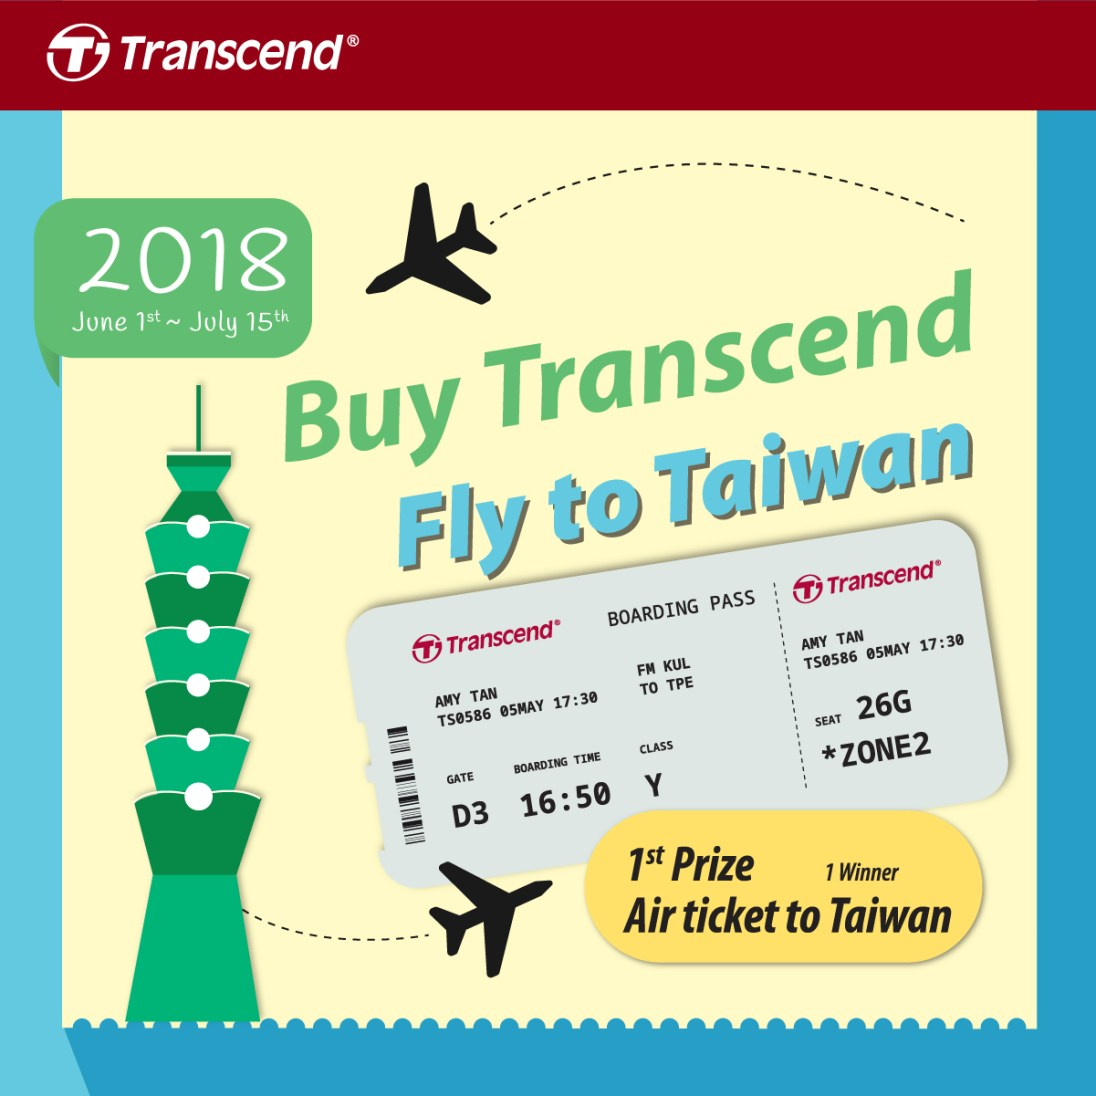 Transcend Fly To Taiwan Campaign Malaysia 2018